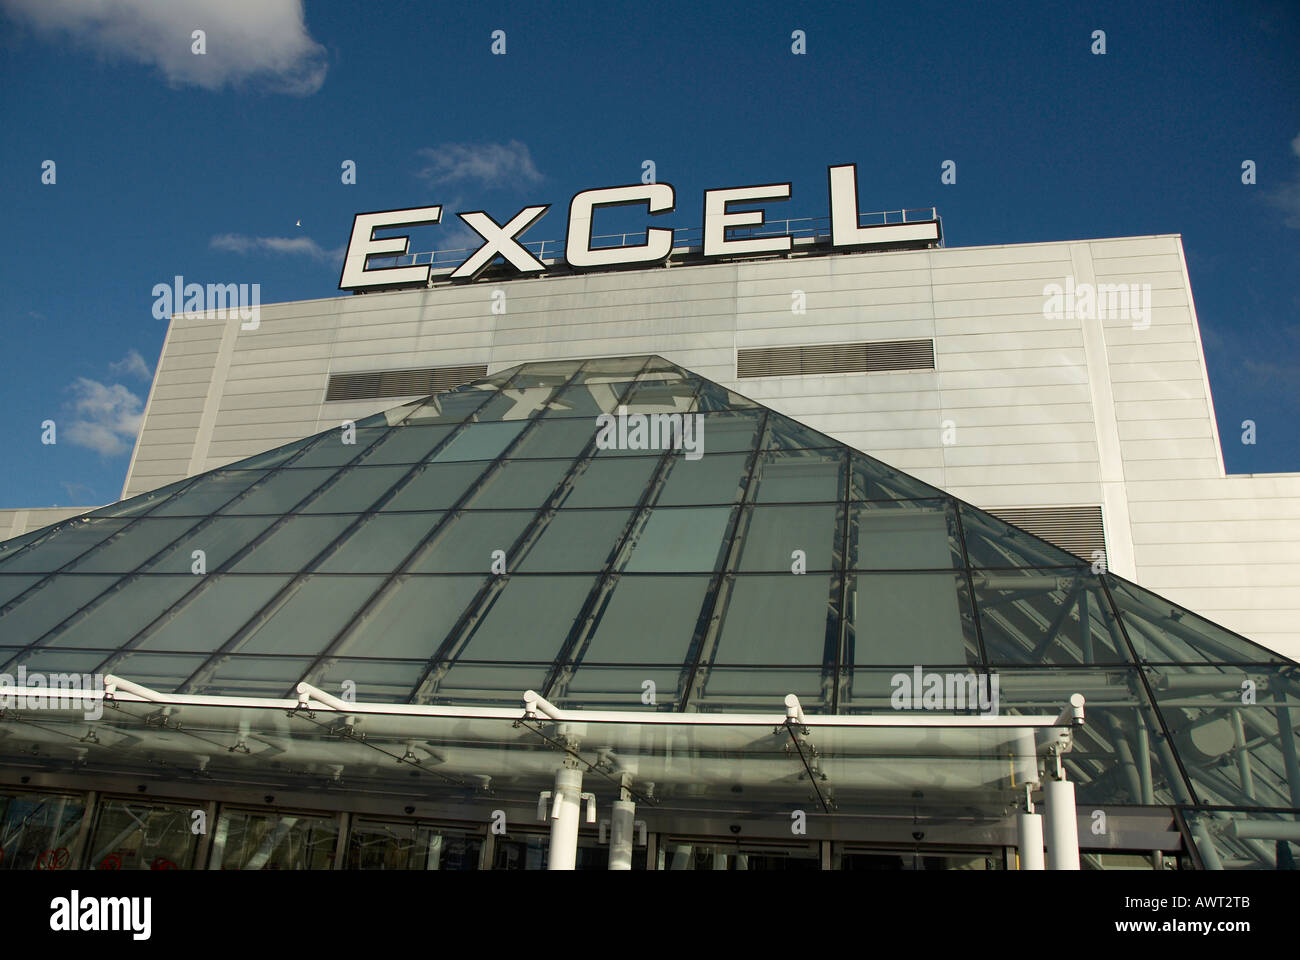 Excel exhibition and conference centre in London Docklands - Stock Image